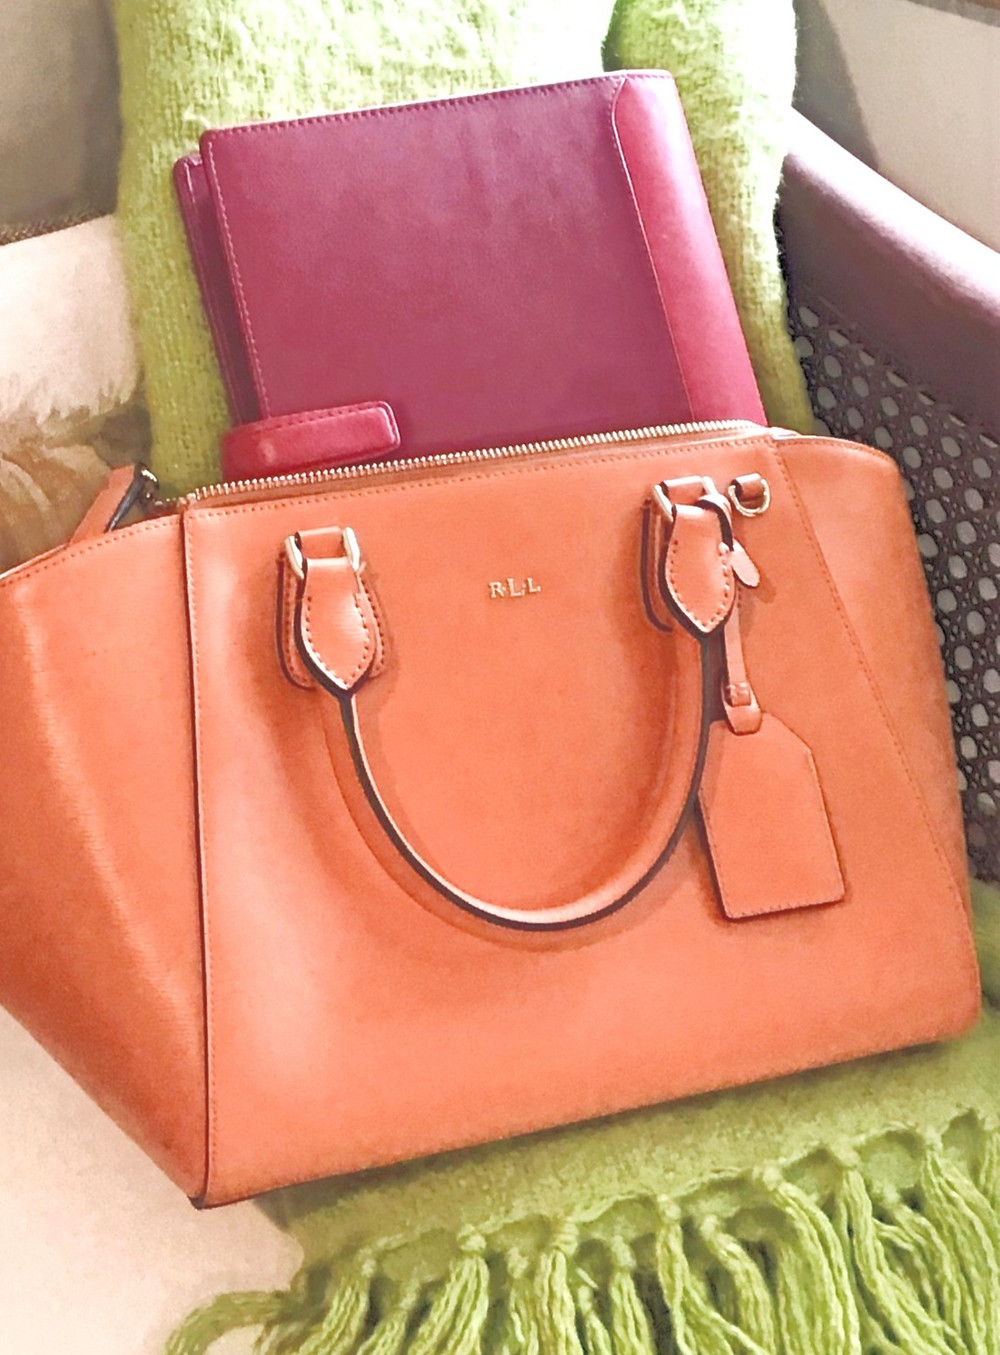 Orange bag on a lime green throw with pink diary